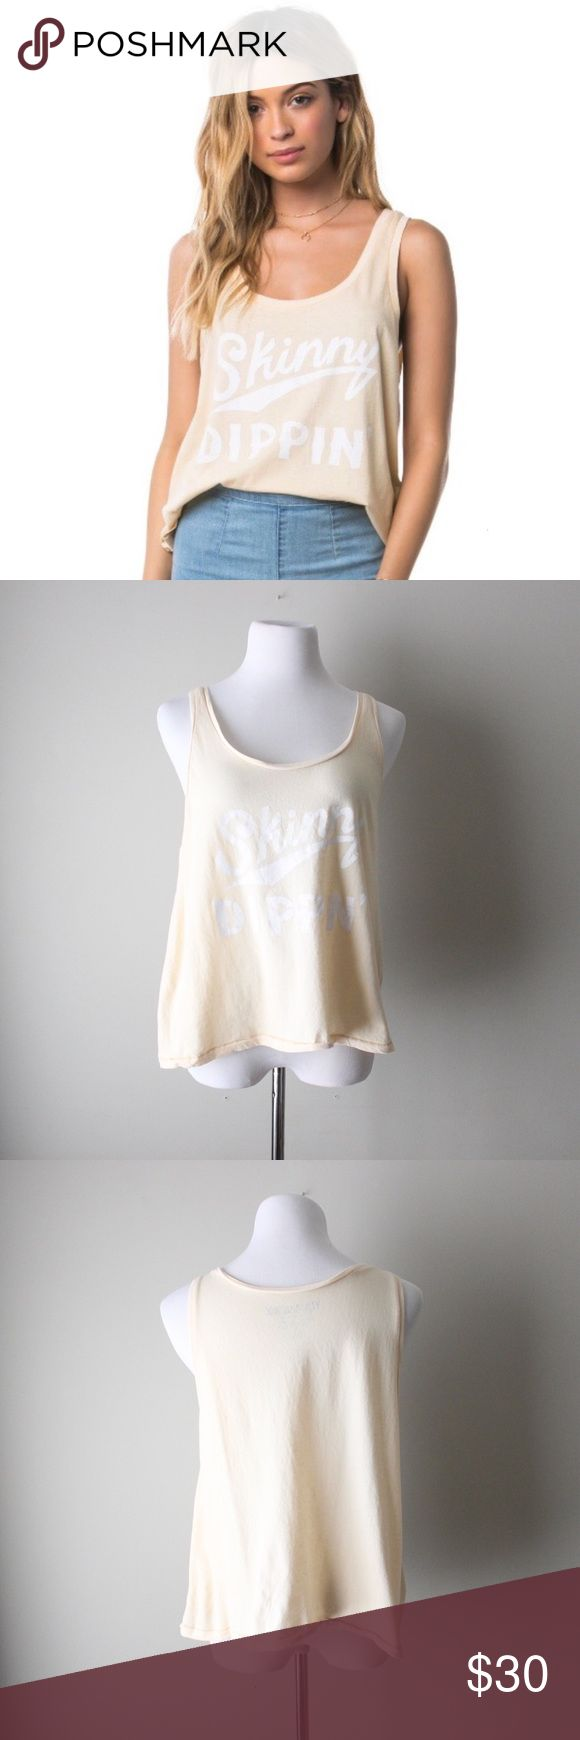 "Skinny Dippin Graphic Sleeveless Tank Top Adorable Amuse Society tank top in a light pink color with contrasting white 'Skinny Dippin' writing. In excellent gently used condition.   Bust: 21"" Length: 23"" Size: Medium  All orders ship next business day! Amuse Society Tops Tank Tops"